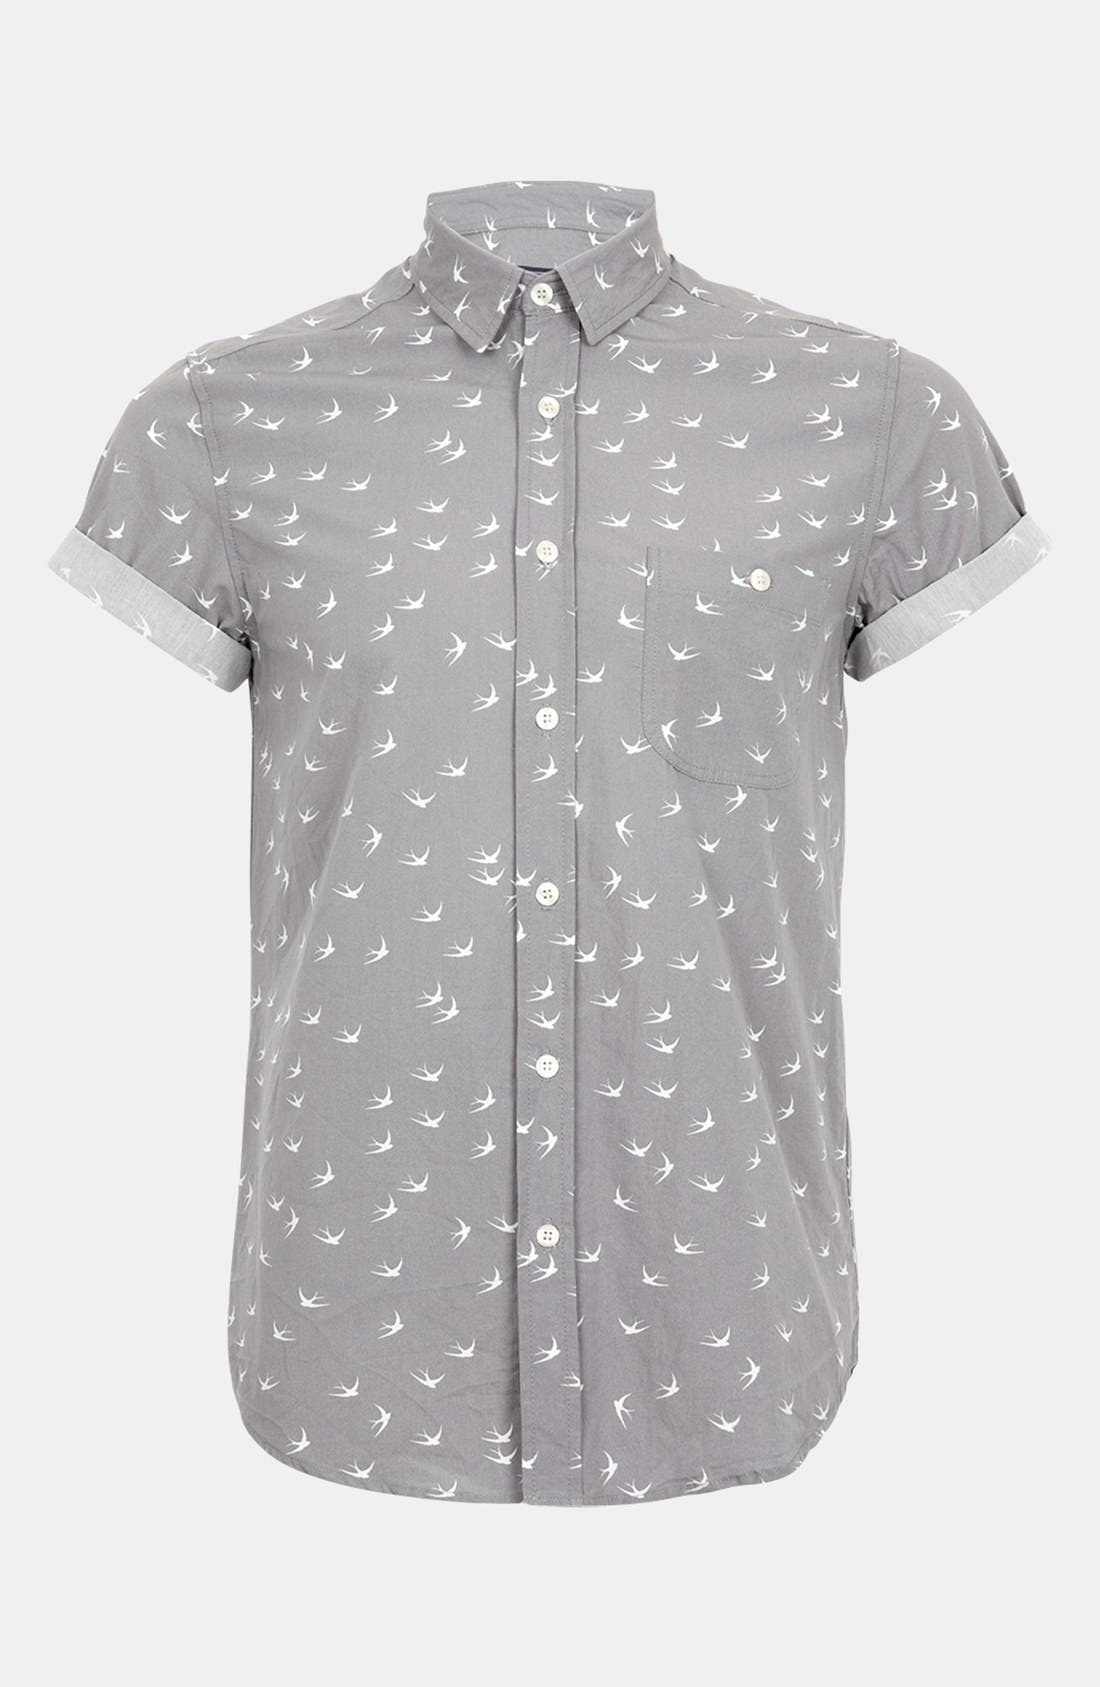 Alternate Image 1 Selected - Topman 'High Roller' Swallow Print Shirt